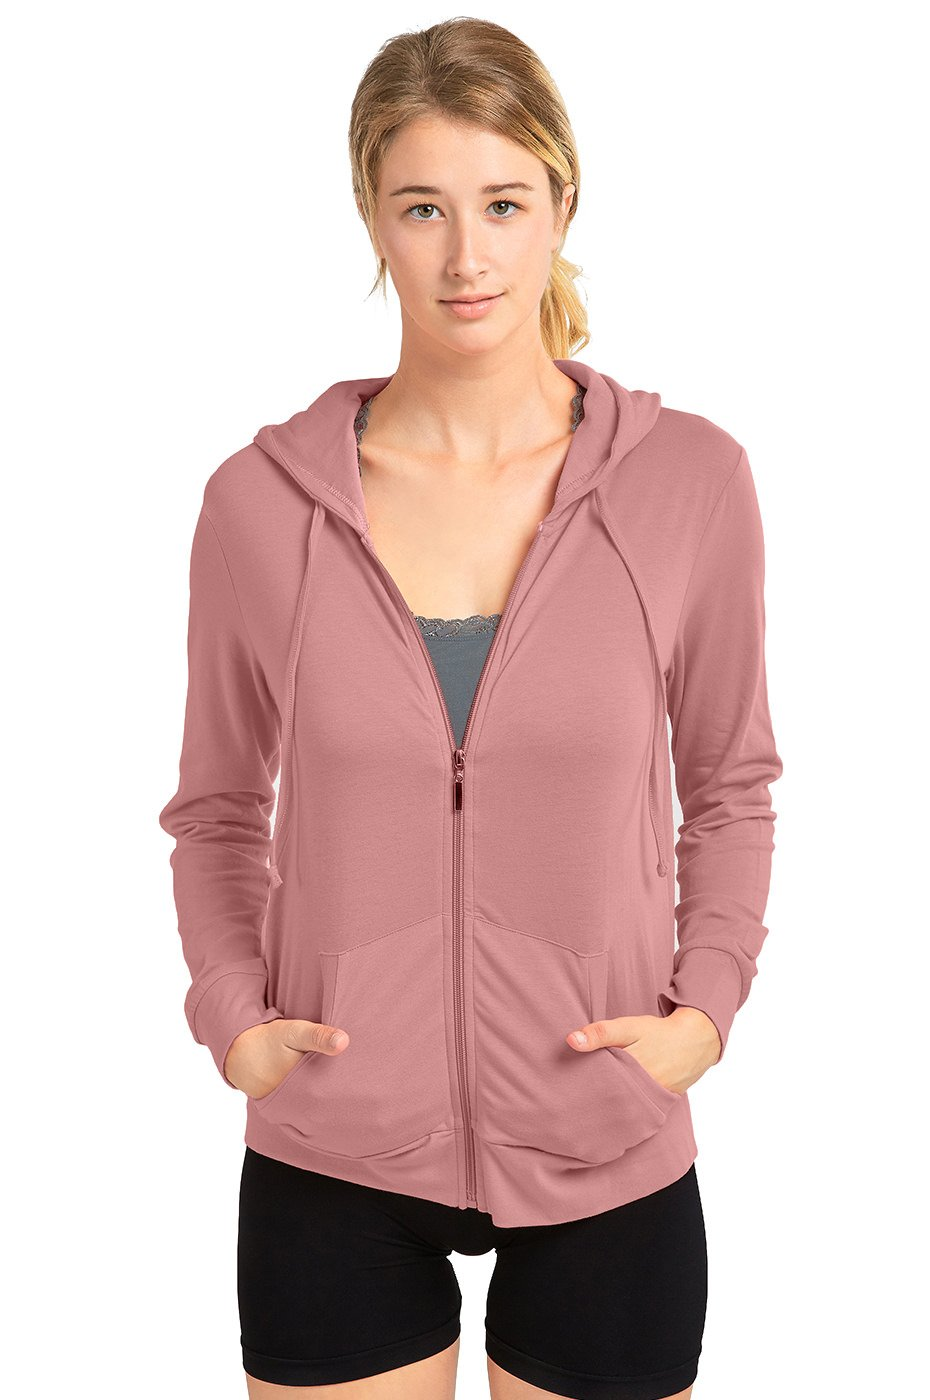 Sofra Women's Thin Cotton Zip Up Hoodie Jacket (M, MV.Rose) by Sofra